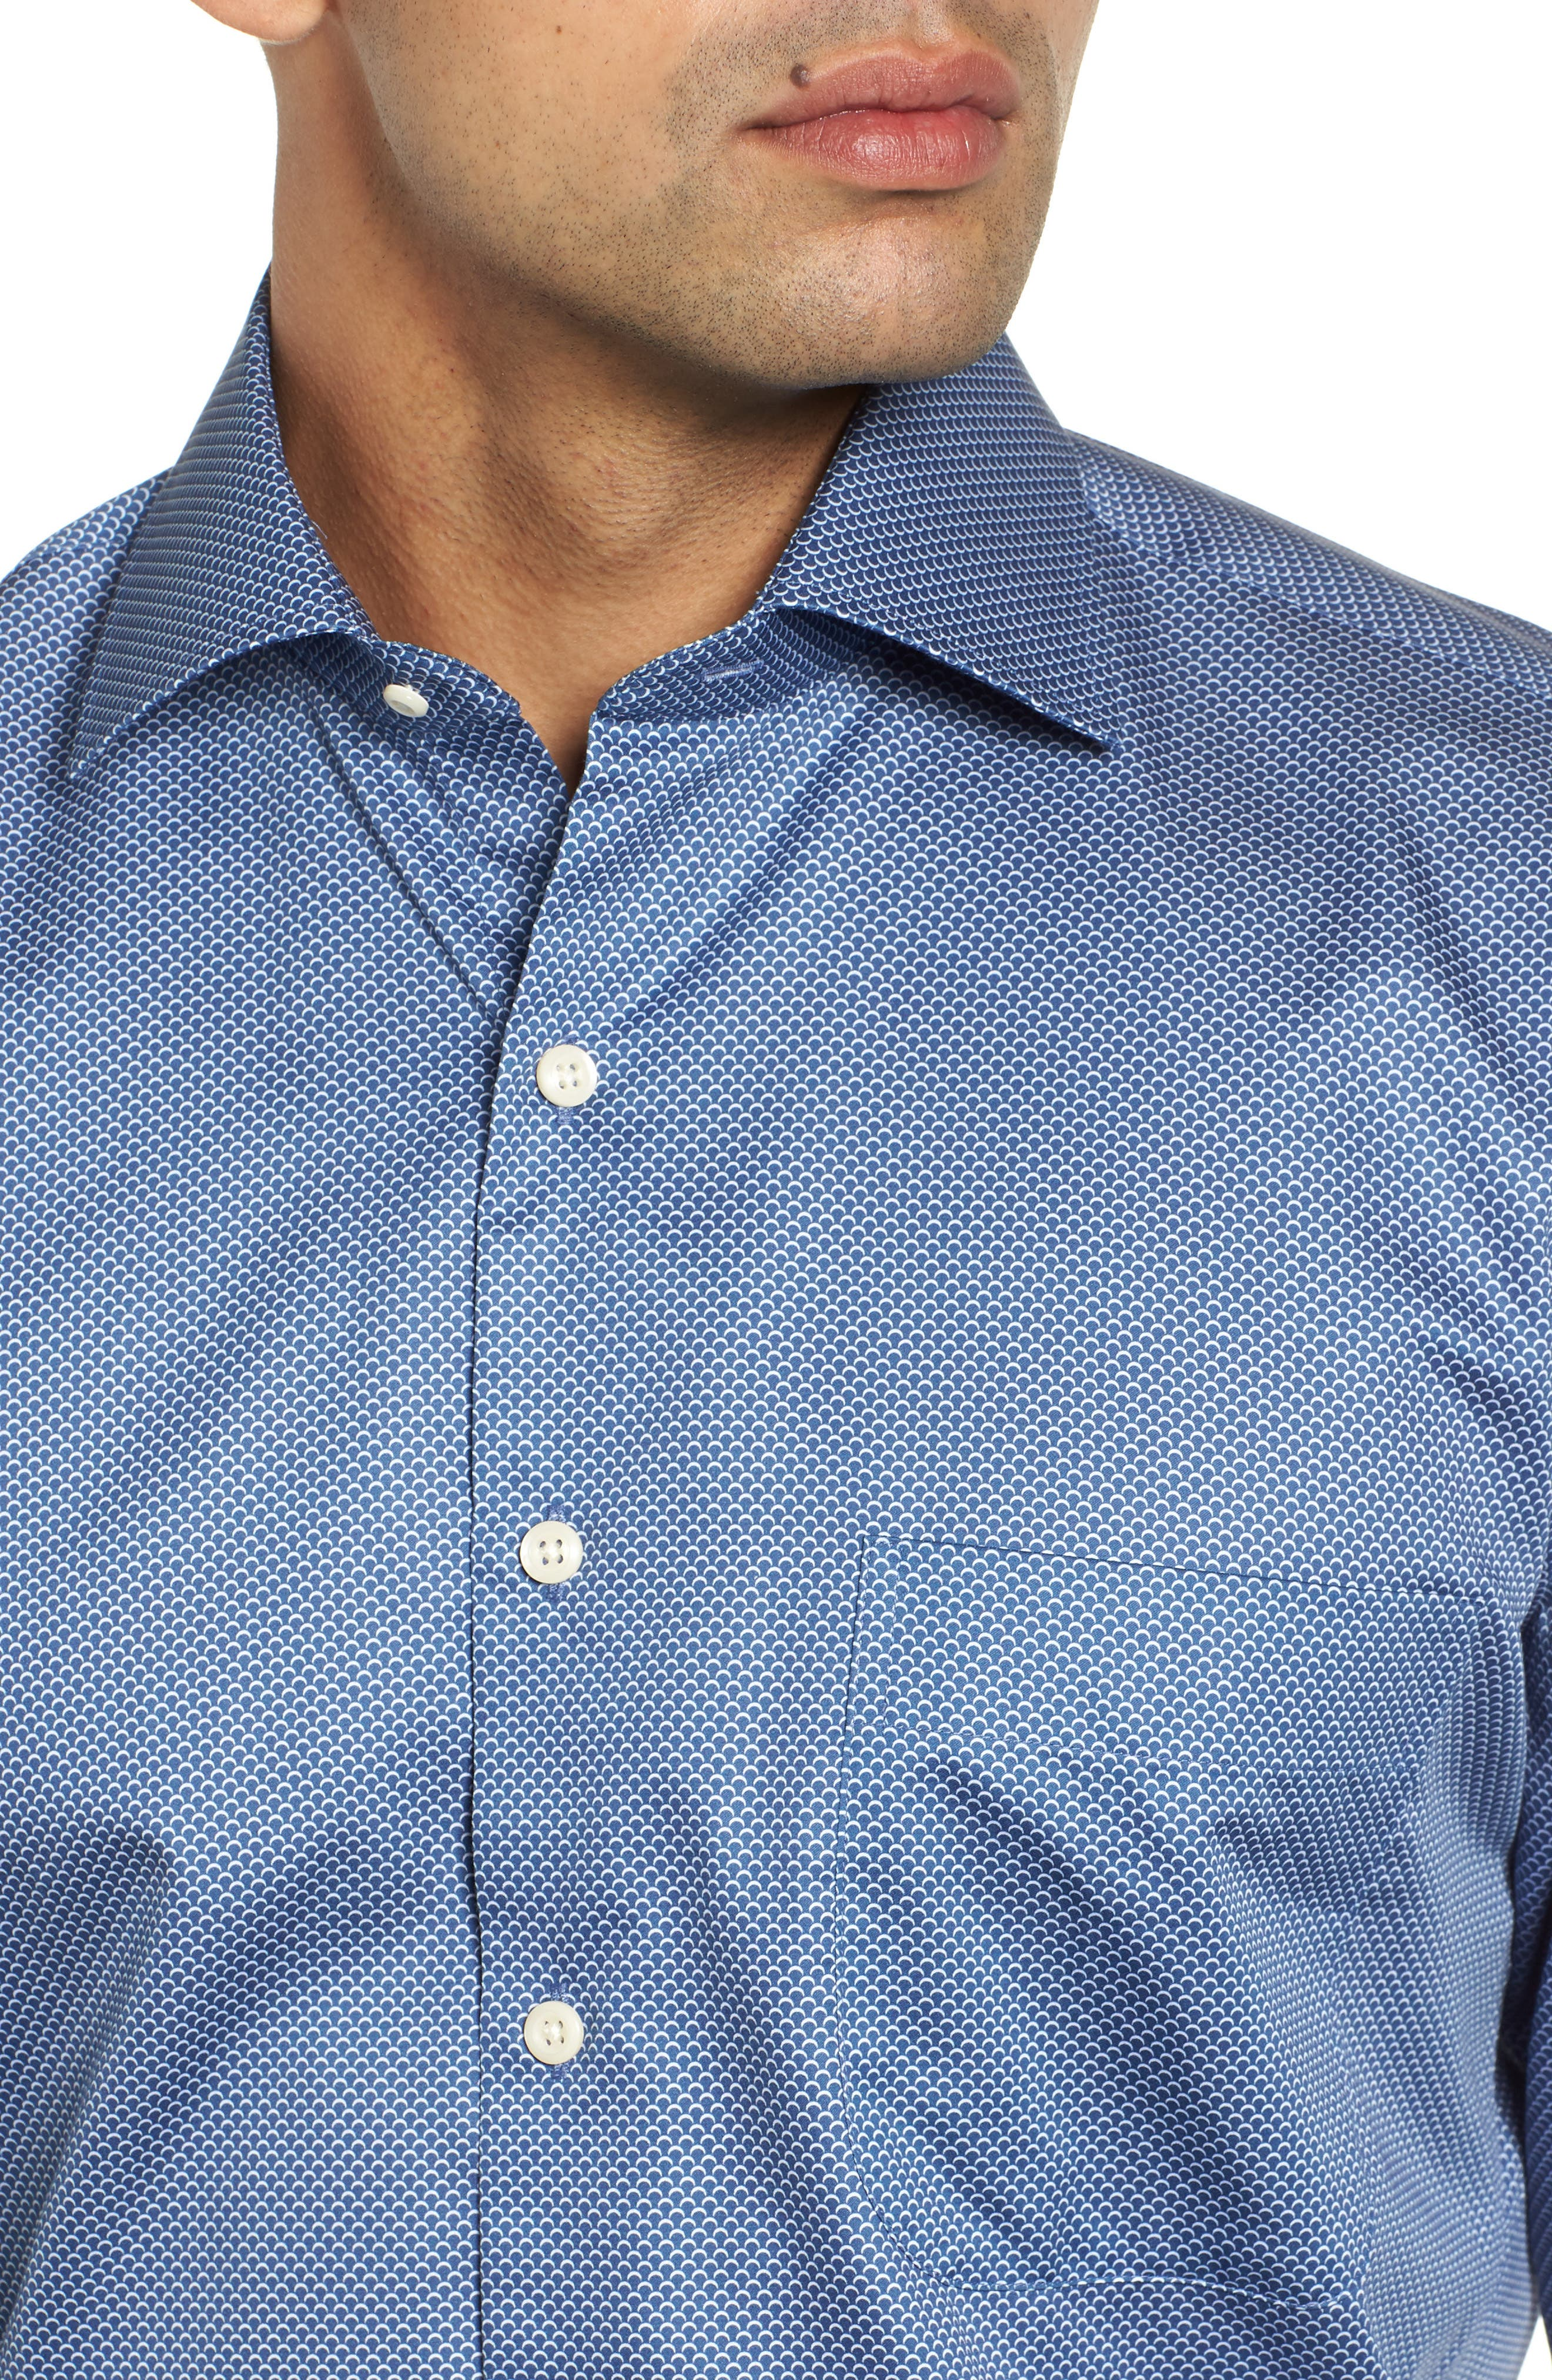 Off the Scale Sport Shirt,                             Alternate thumbnail 2, color,                             YANKEE BLUE